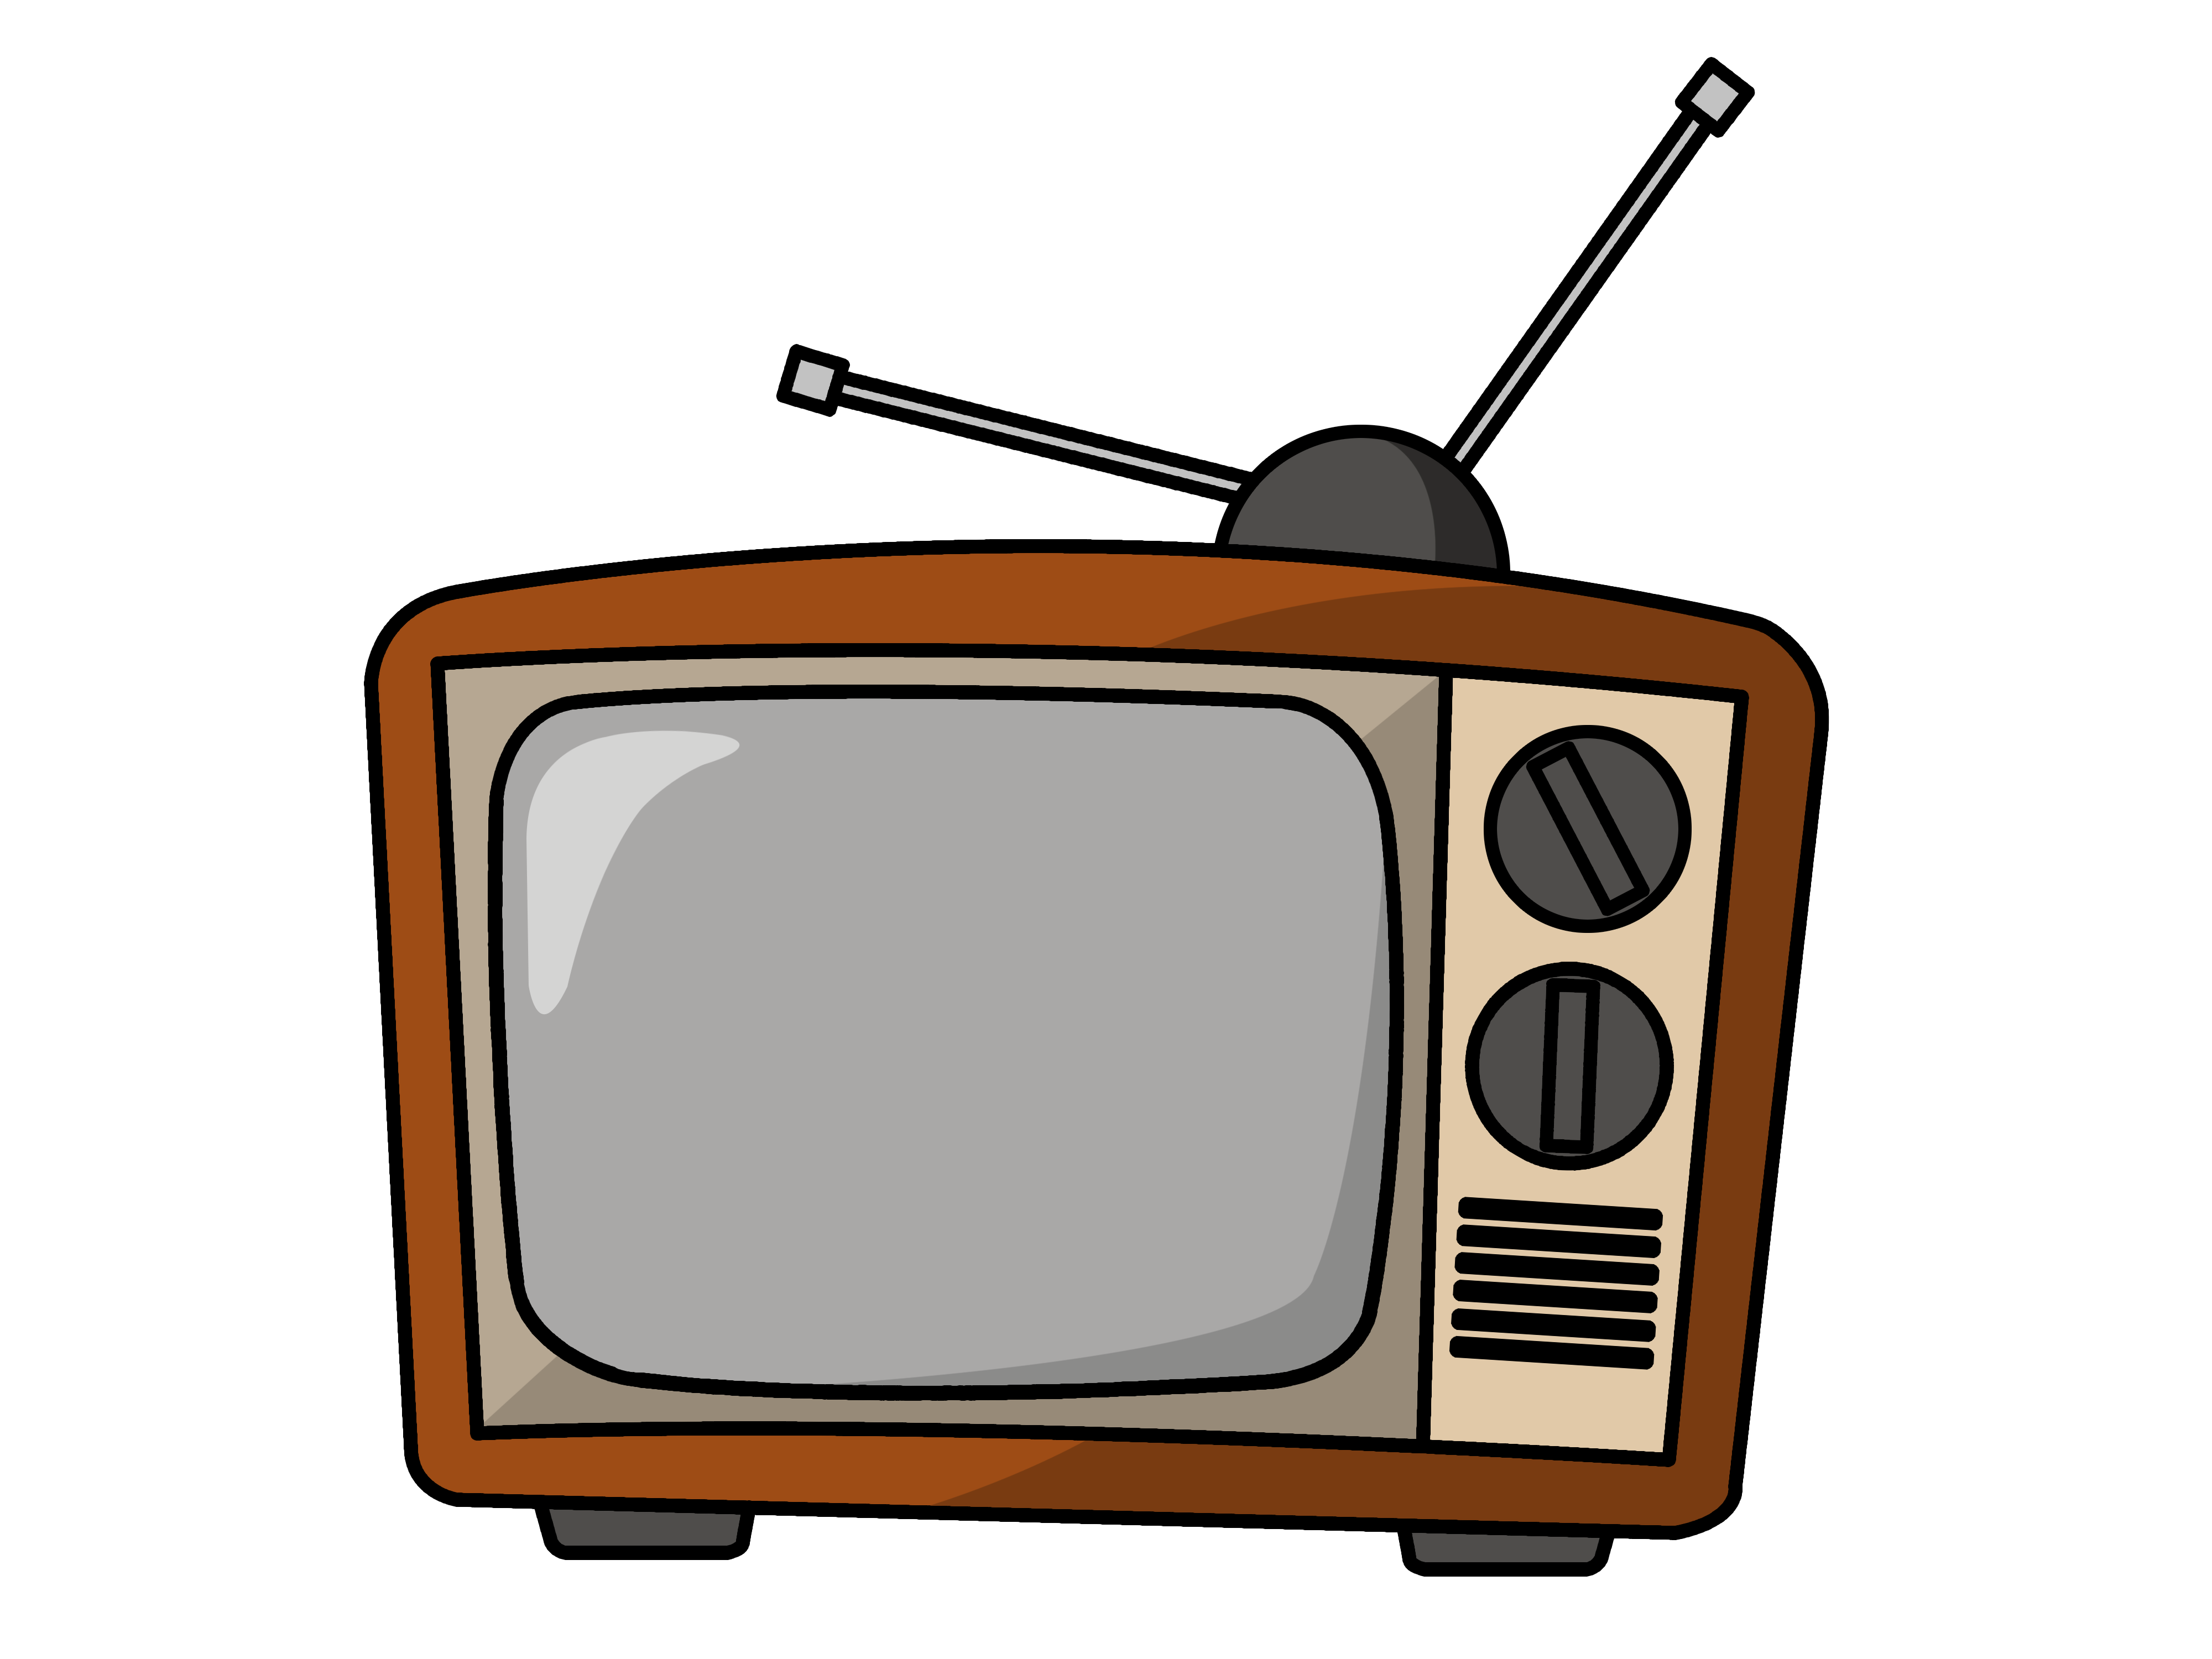 Advertisement clipart watch tv Tv Free Images Free Clipart